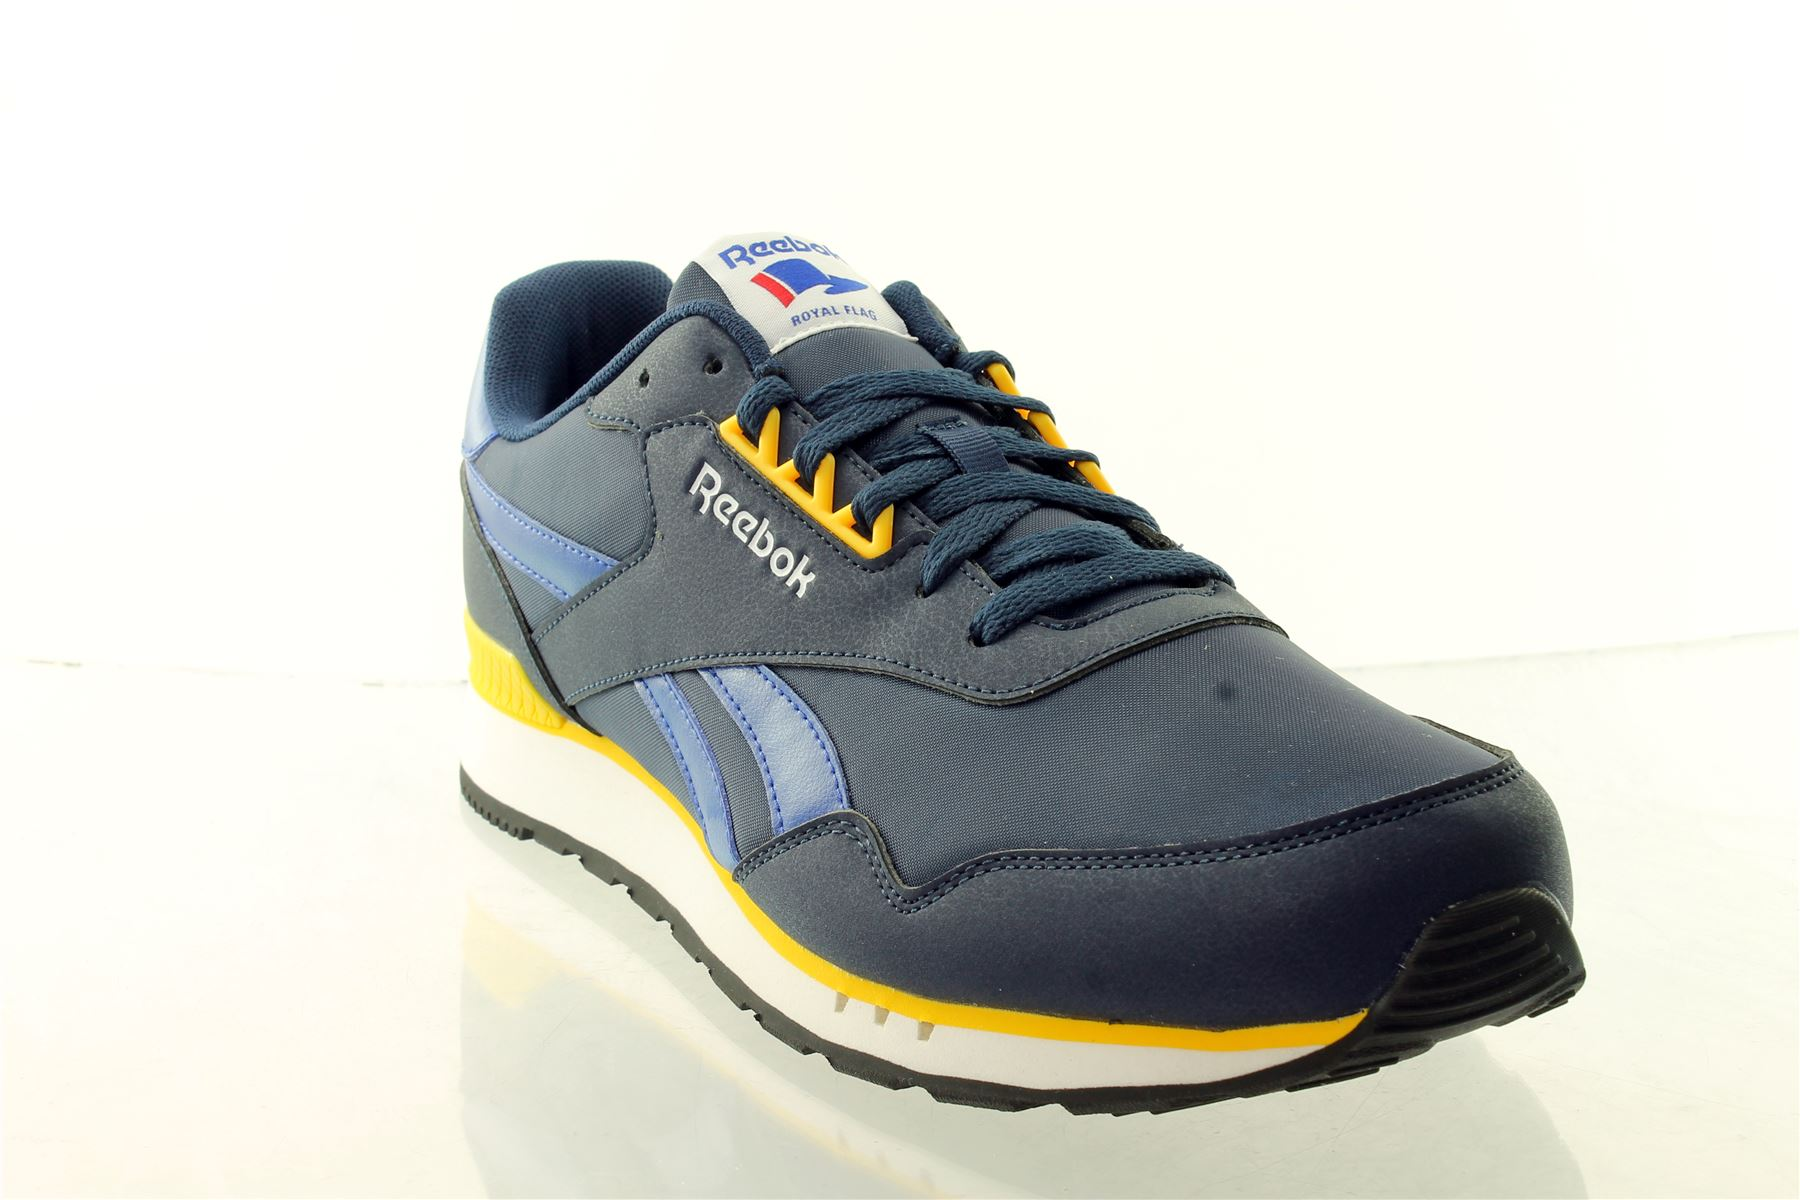 reebok classic nylon rayen sprint unisex trainers sale price sizes uk 3 to 6 5 ebay. Black Bedroom Furniture Sets. Home Design Ideas